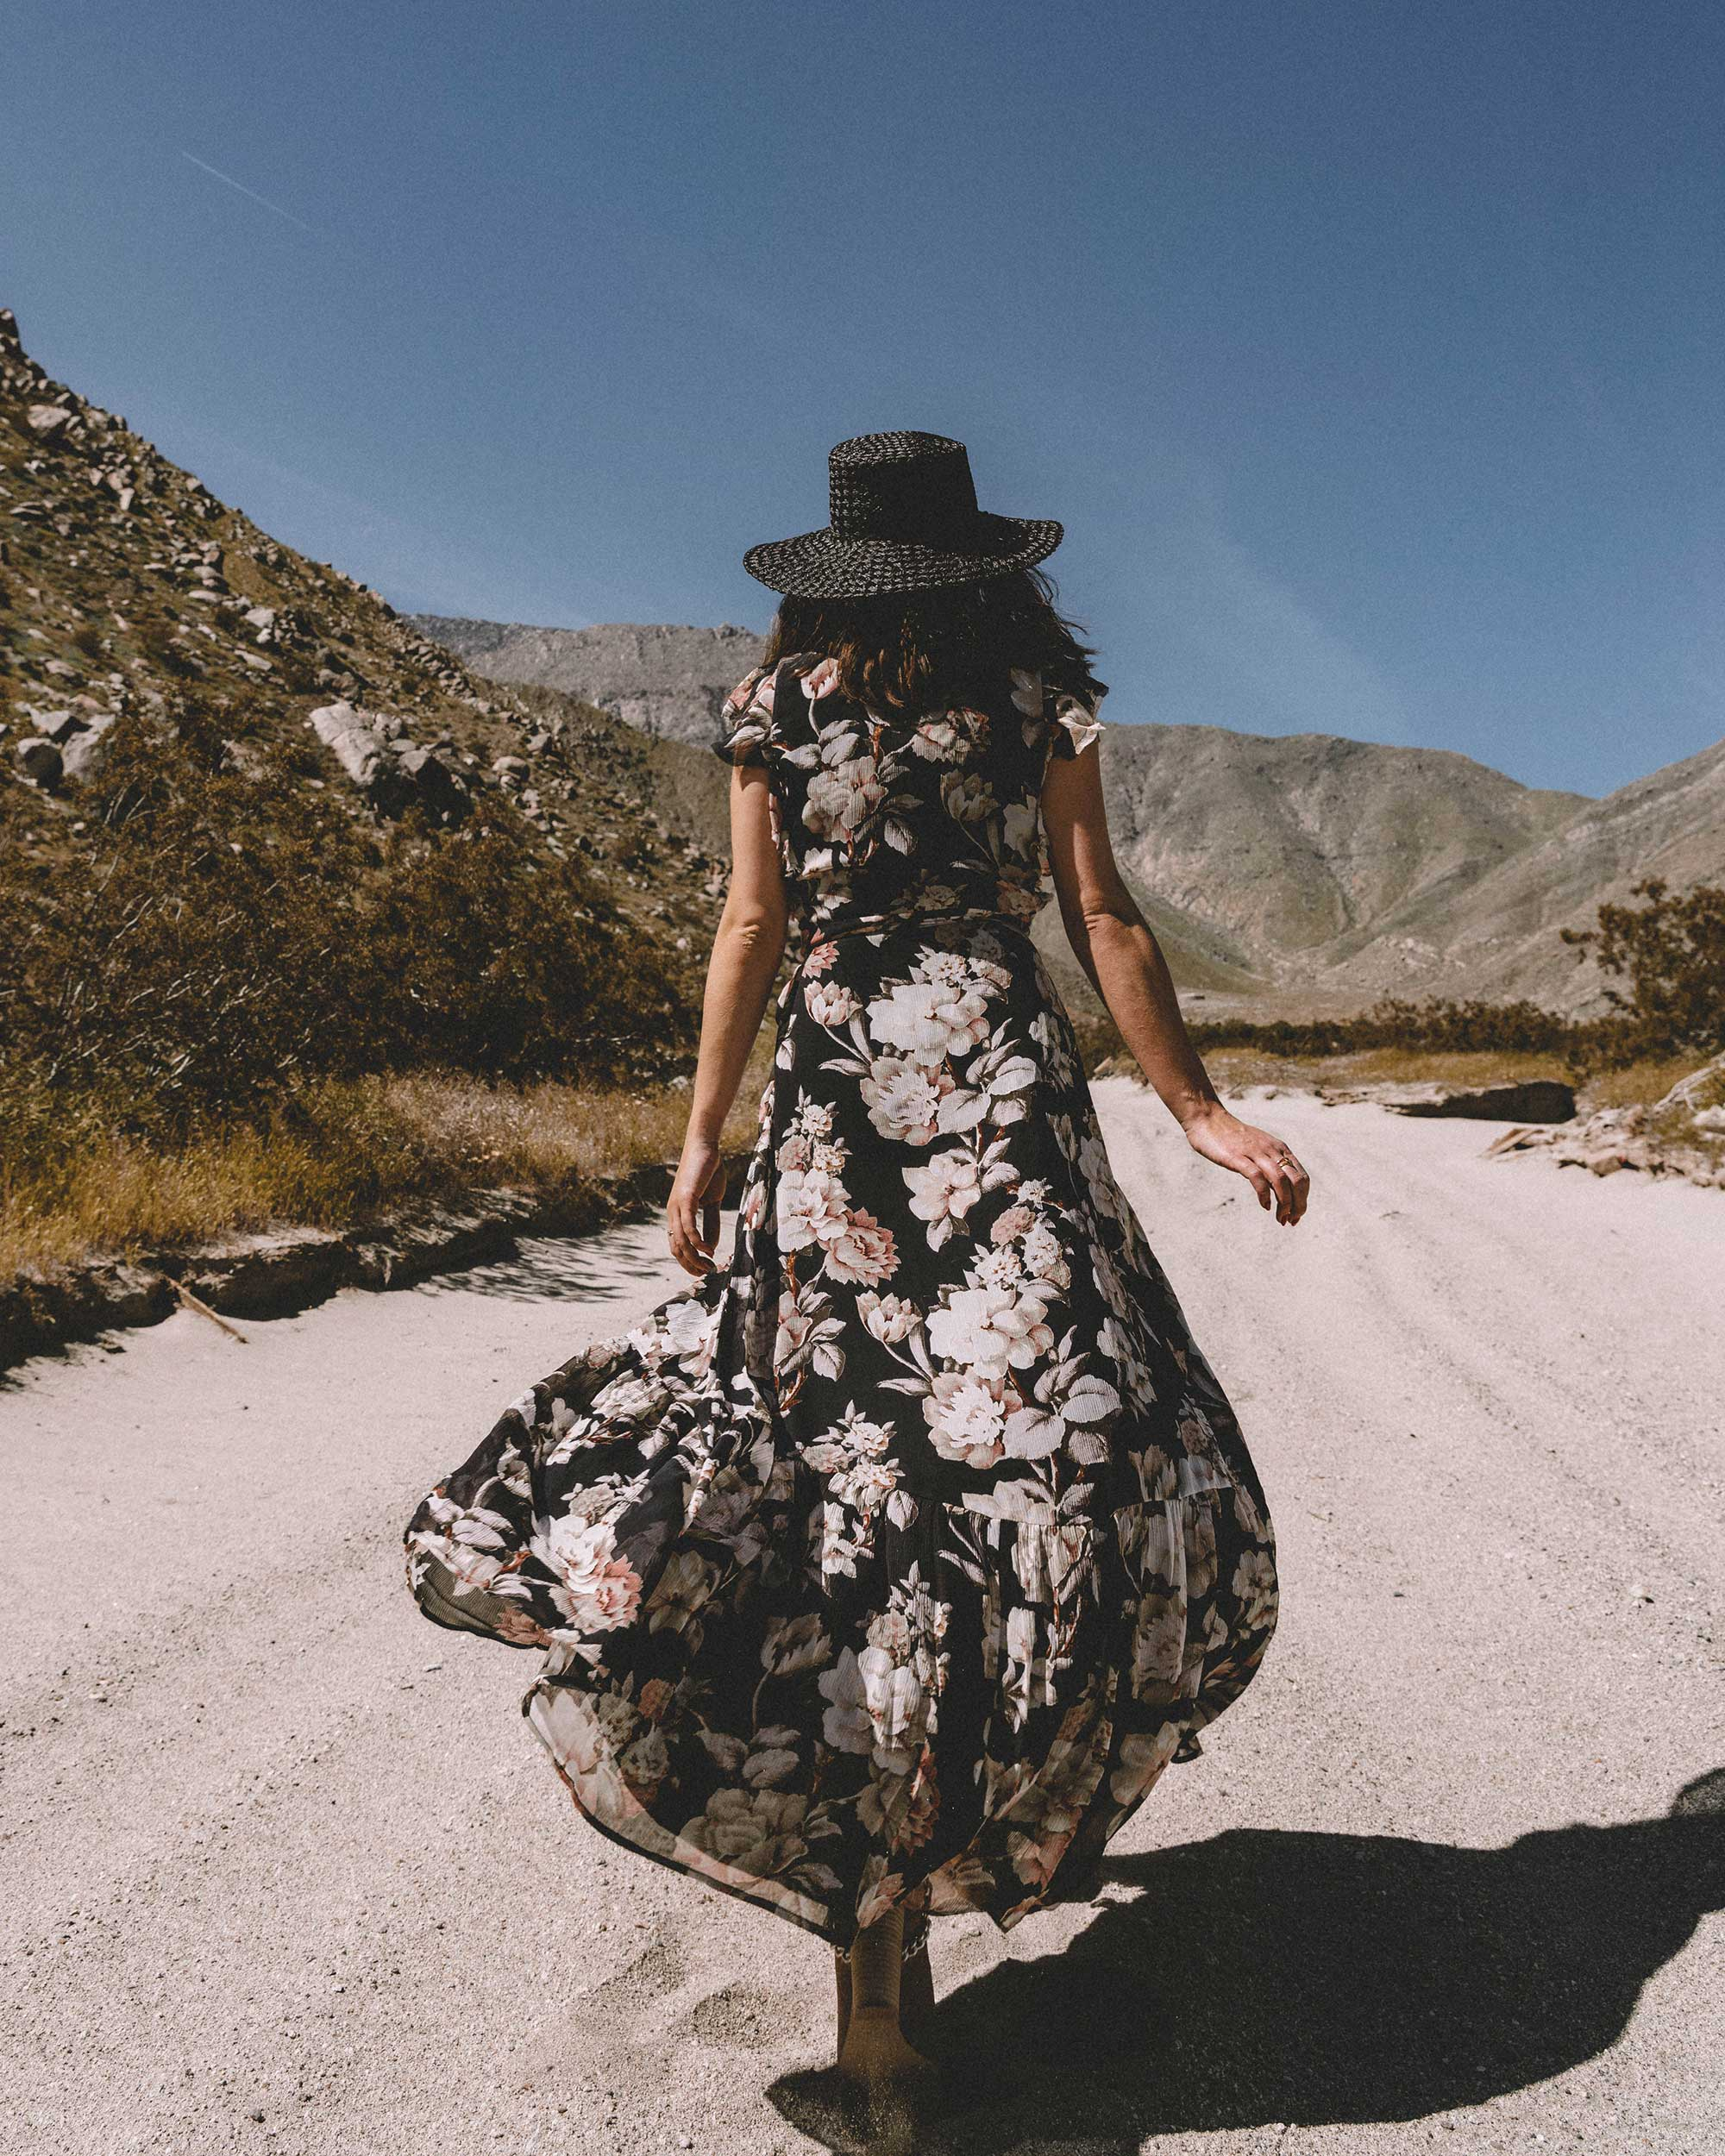 Sarah Butler of Sarah Styles Seattle wears Paige Maquel Silk Floral Maxi Wrap Dress in Palm Springs for Coachella Festival Outfit | @sarahchristine, Seattle Blogger1.jpg